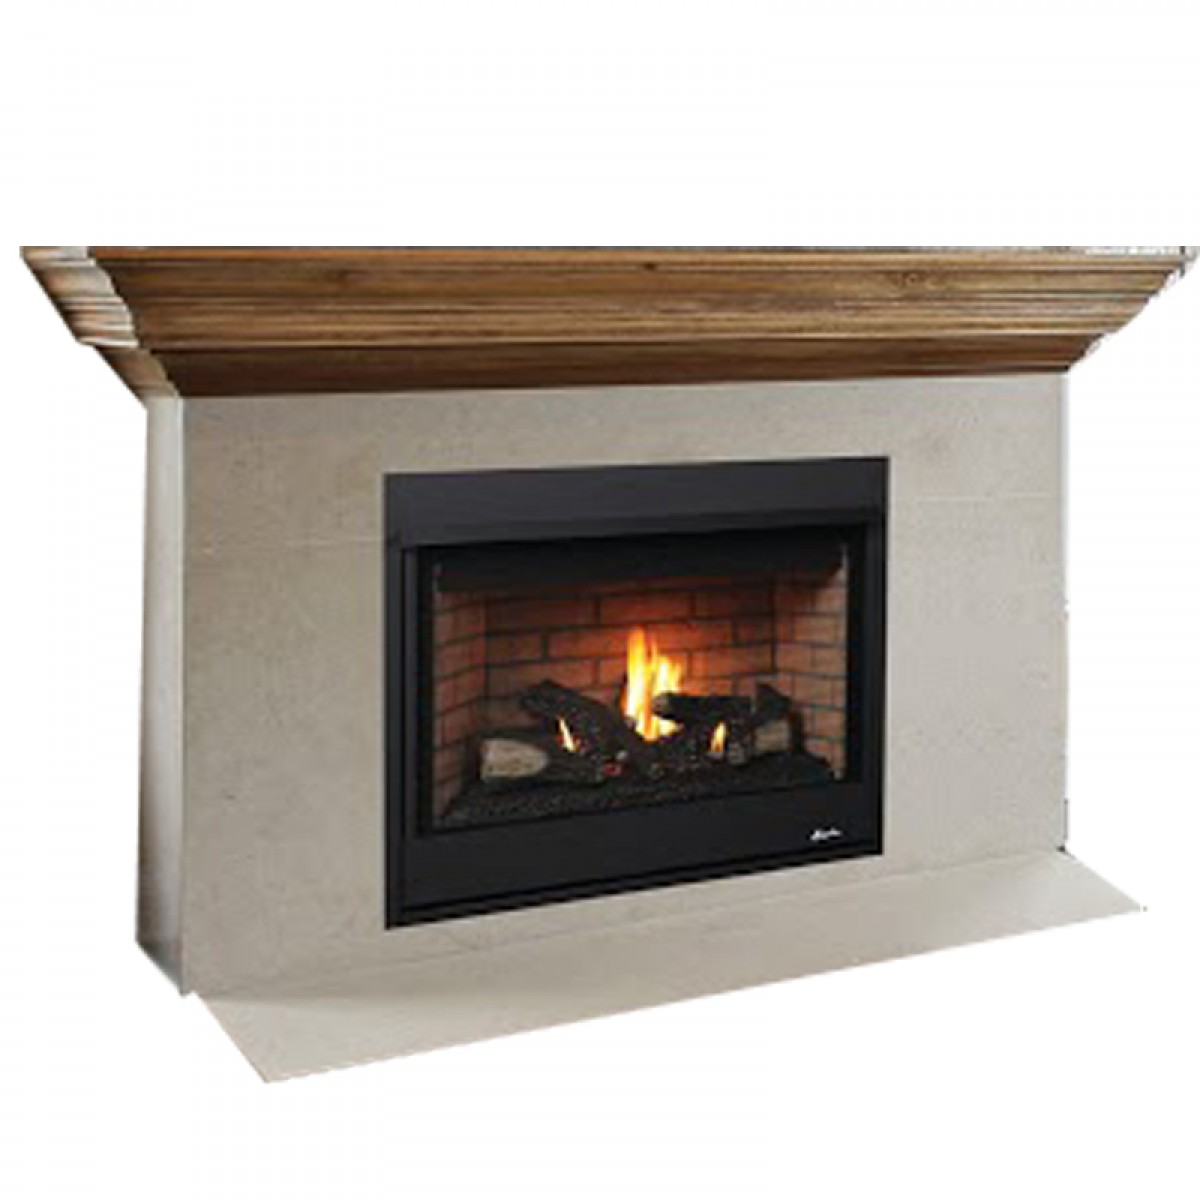 Ihp Superior Drt Tmn 35 Dv Ng Top Vent Mv Fireplace